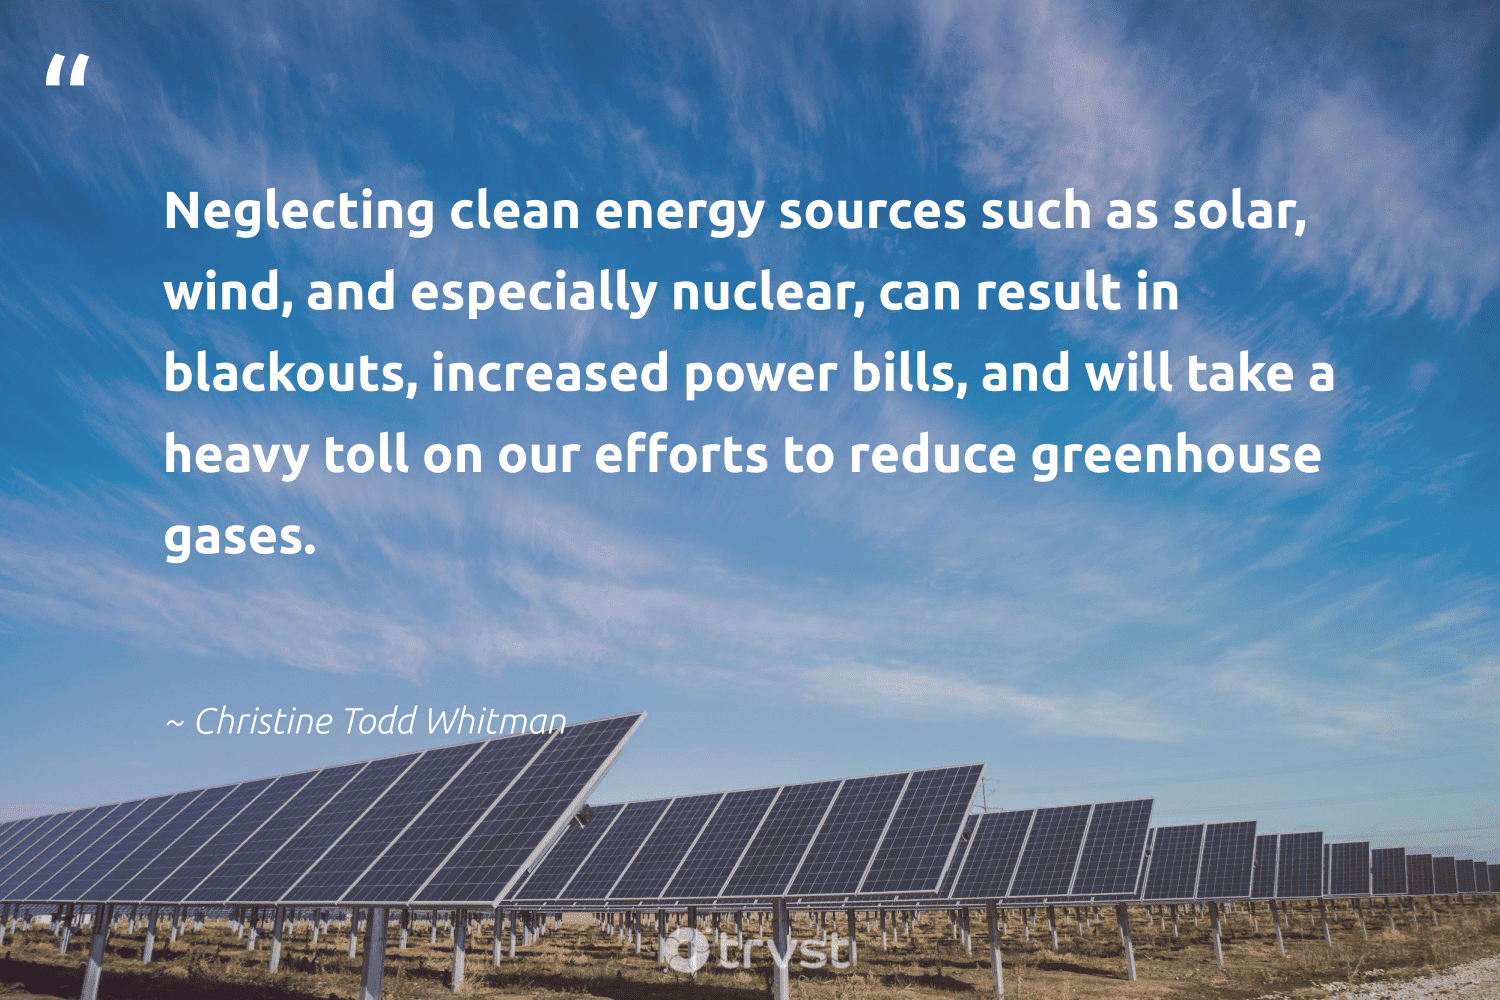 """""""Neglecting clean energy sources such as solar, wind, and especially nuclear, can result in blackouts, increased power bills, and will take a heavy toll on our efforts to reduce greenhouse gases.""""  - Christine Todd Whitman #trvst #quotes #reduce #energy #cleanenergy #solar #refurbished #gogreen #waste #bethechange #upcycling #climateaction"""